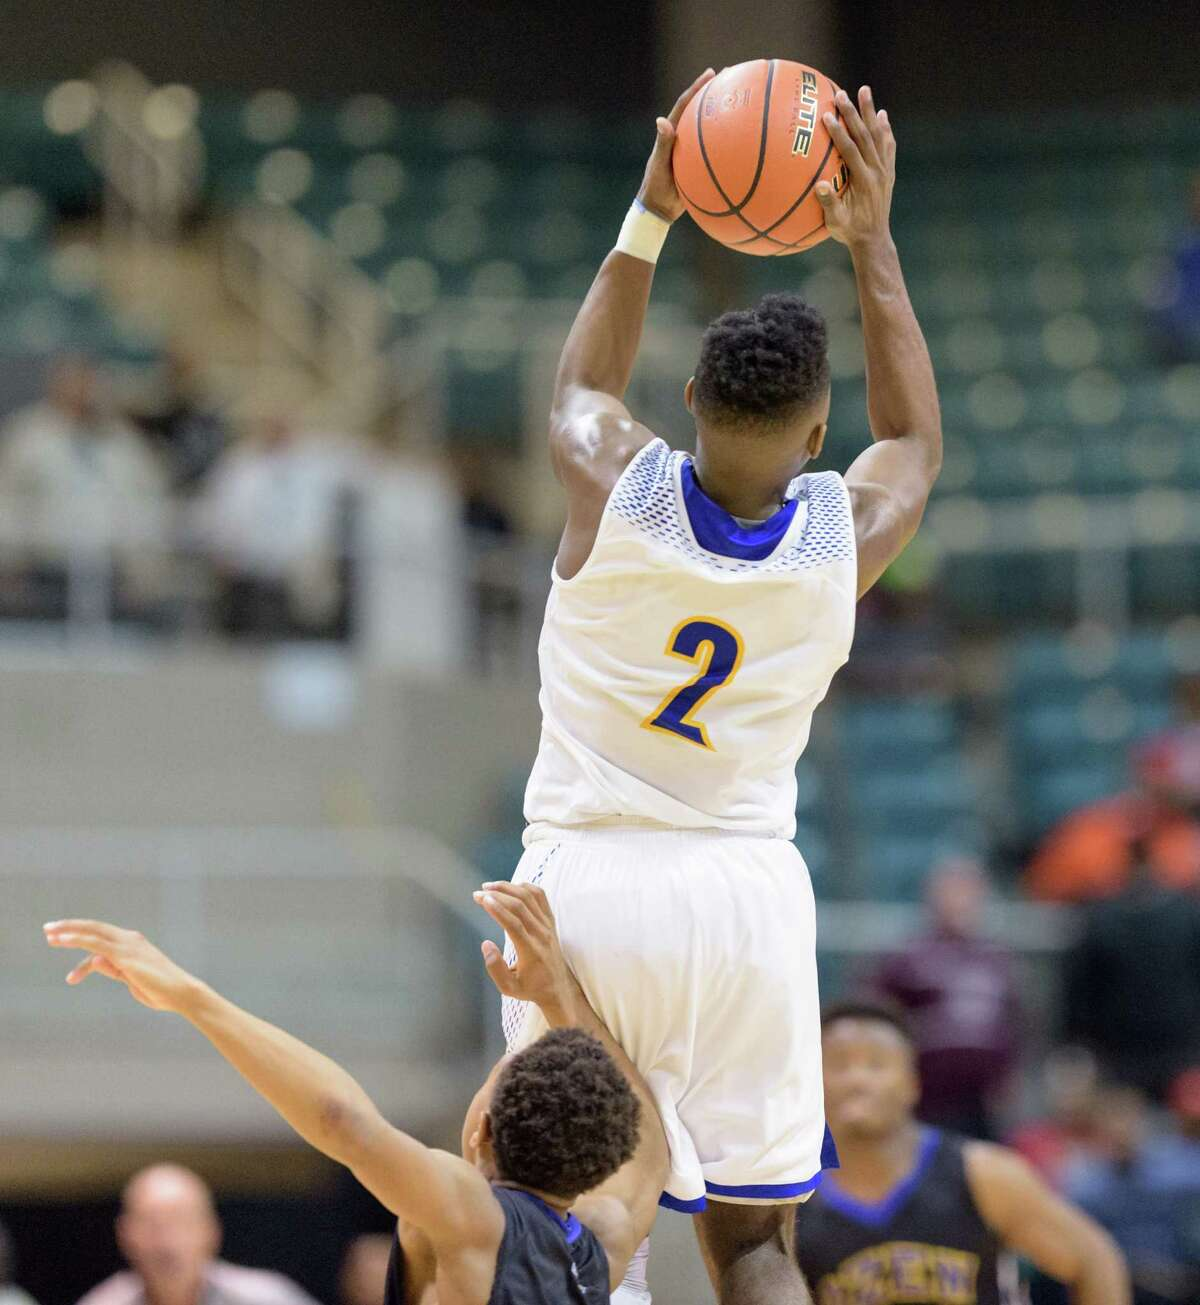 Ken Busby (2) of the Elkins Knights grabs a long pass in the second half against the Beaumont Ozen Panthers in high school basketball's 5A Region III finals on Saturday, March 5, 2016 at the Merrell Center.